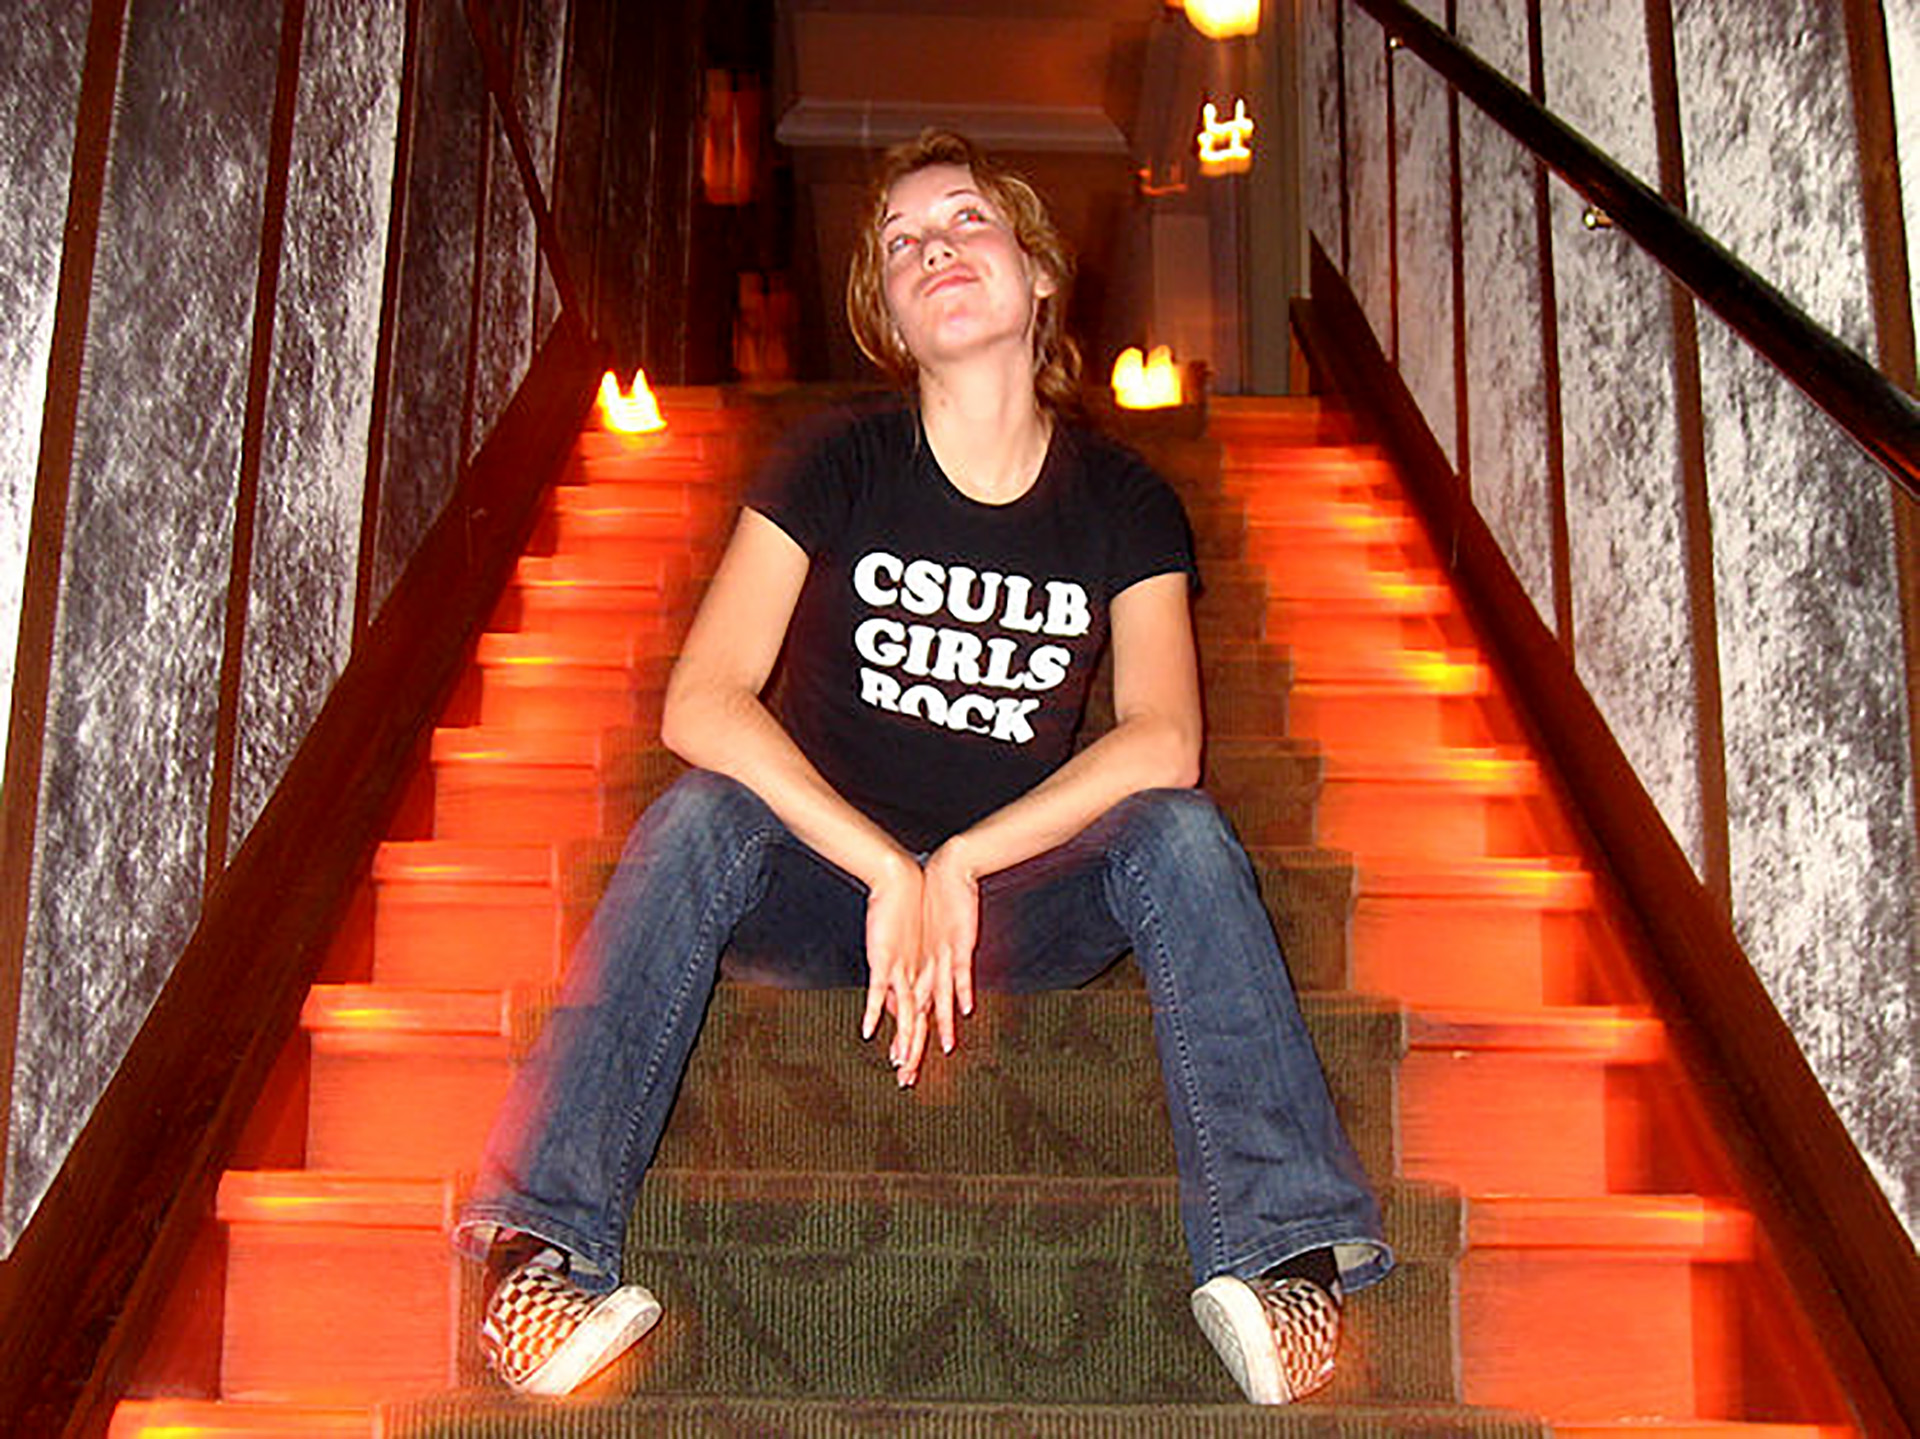 My former Student Assistant Christine Monet Johnson in the stairwell at the Museum of Jurassic Technology in Culver City, California